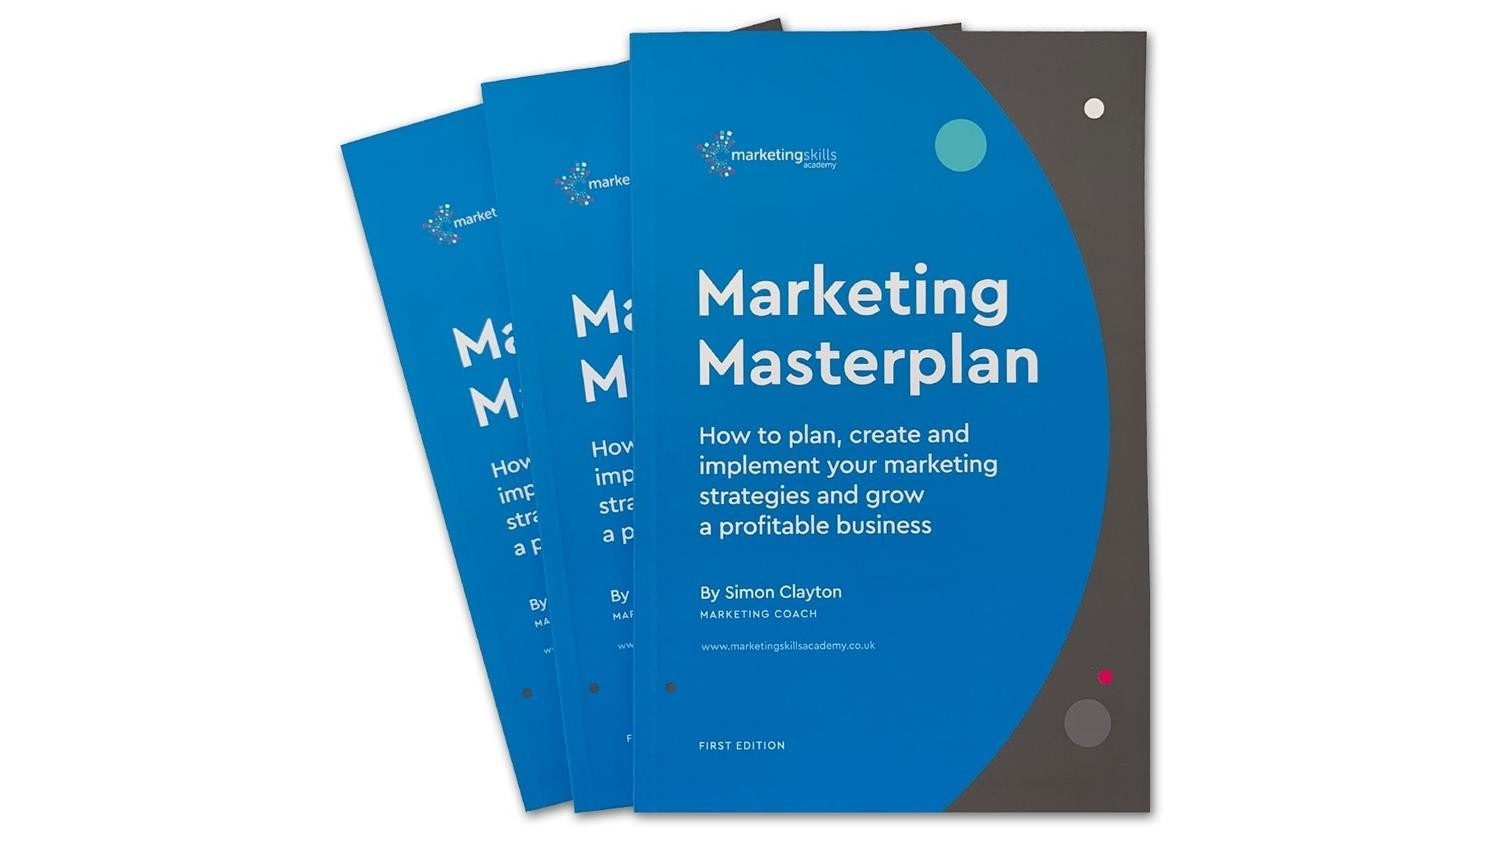 Marketing Masterplan PDF